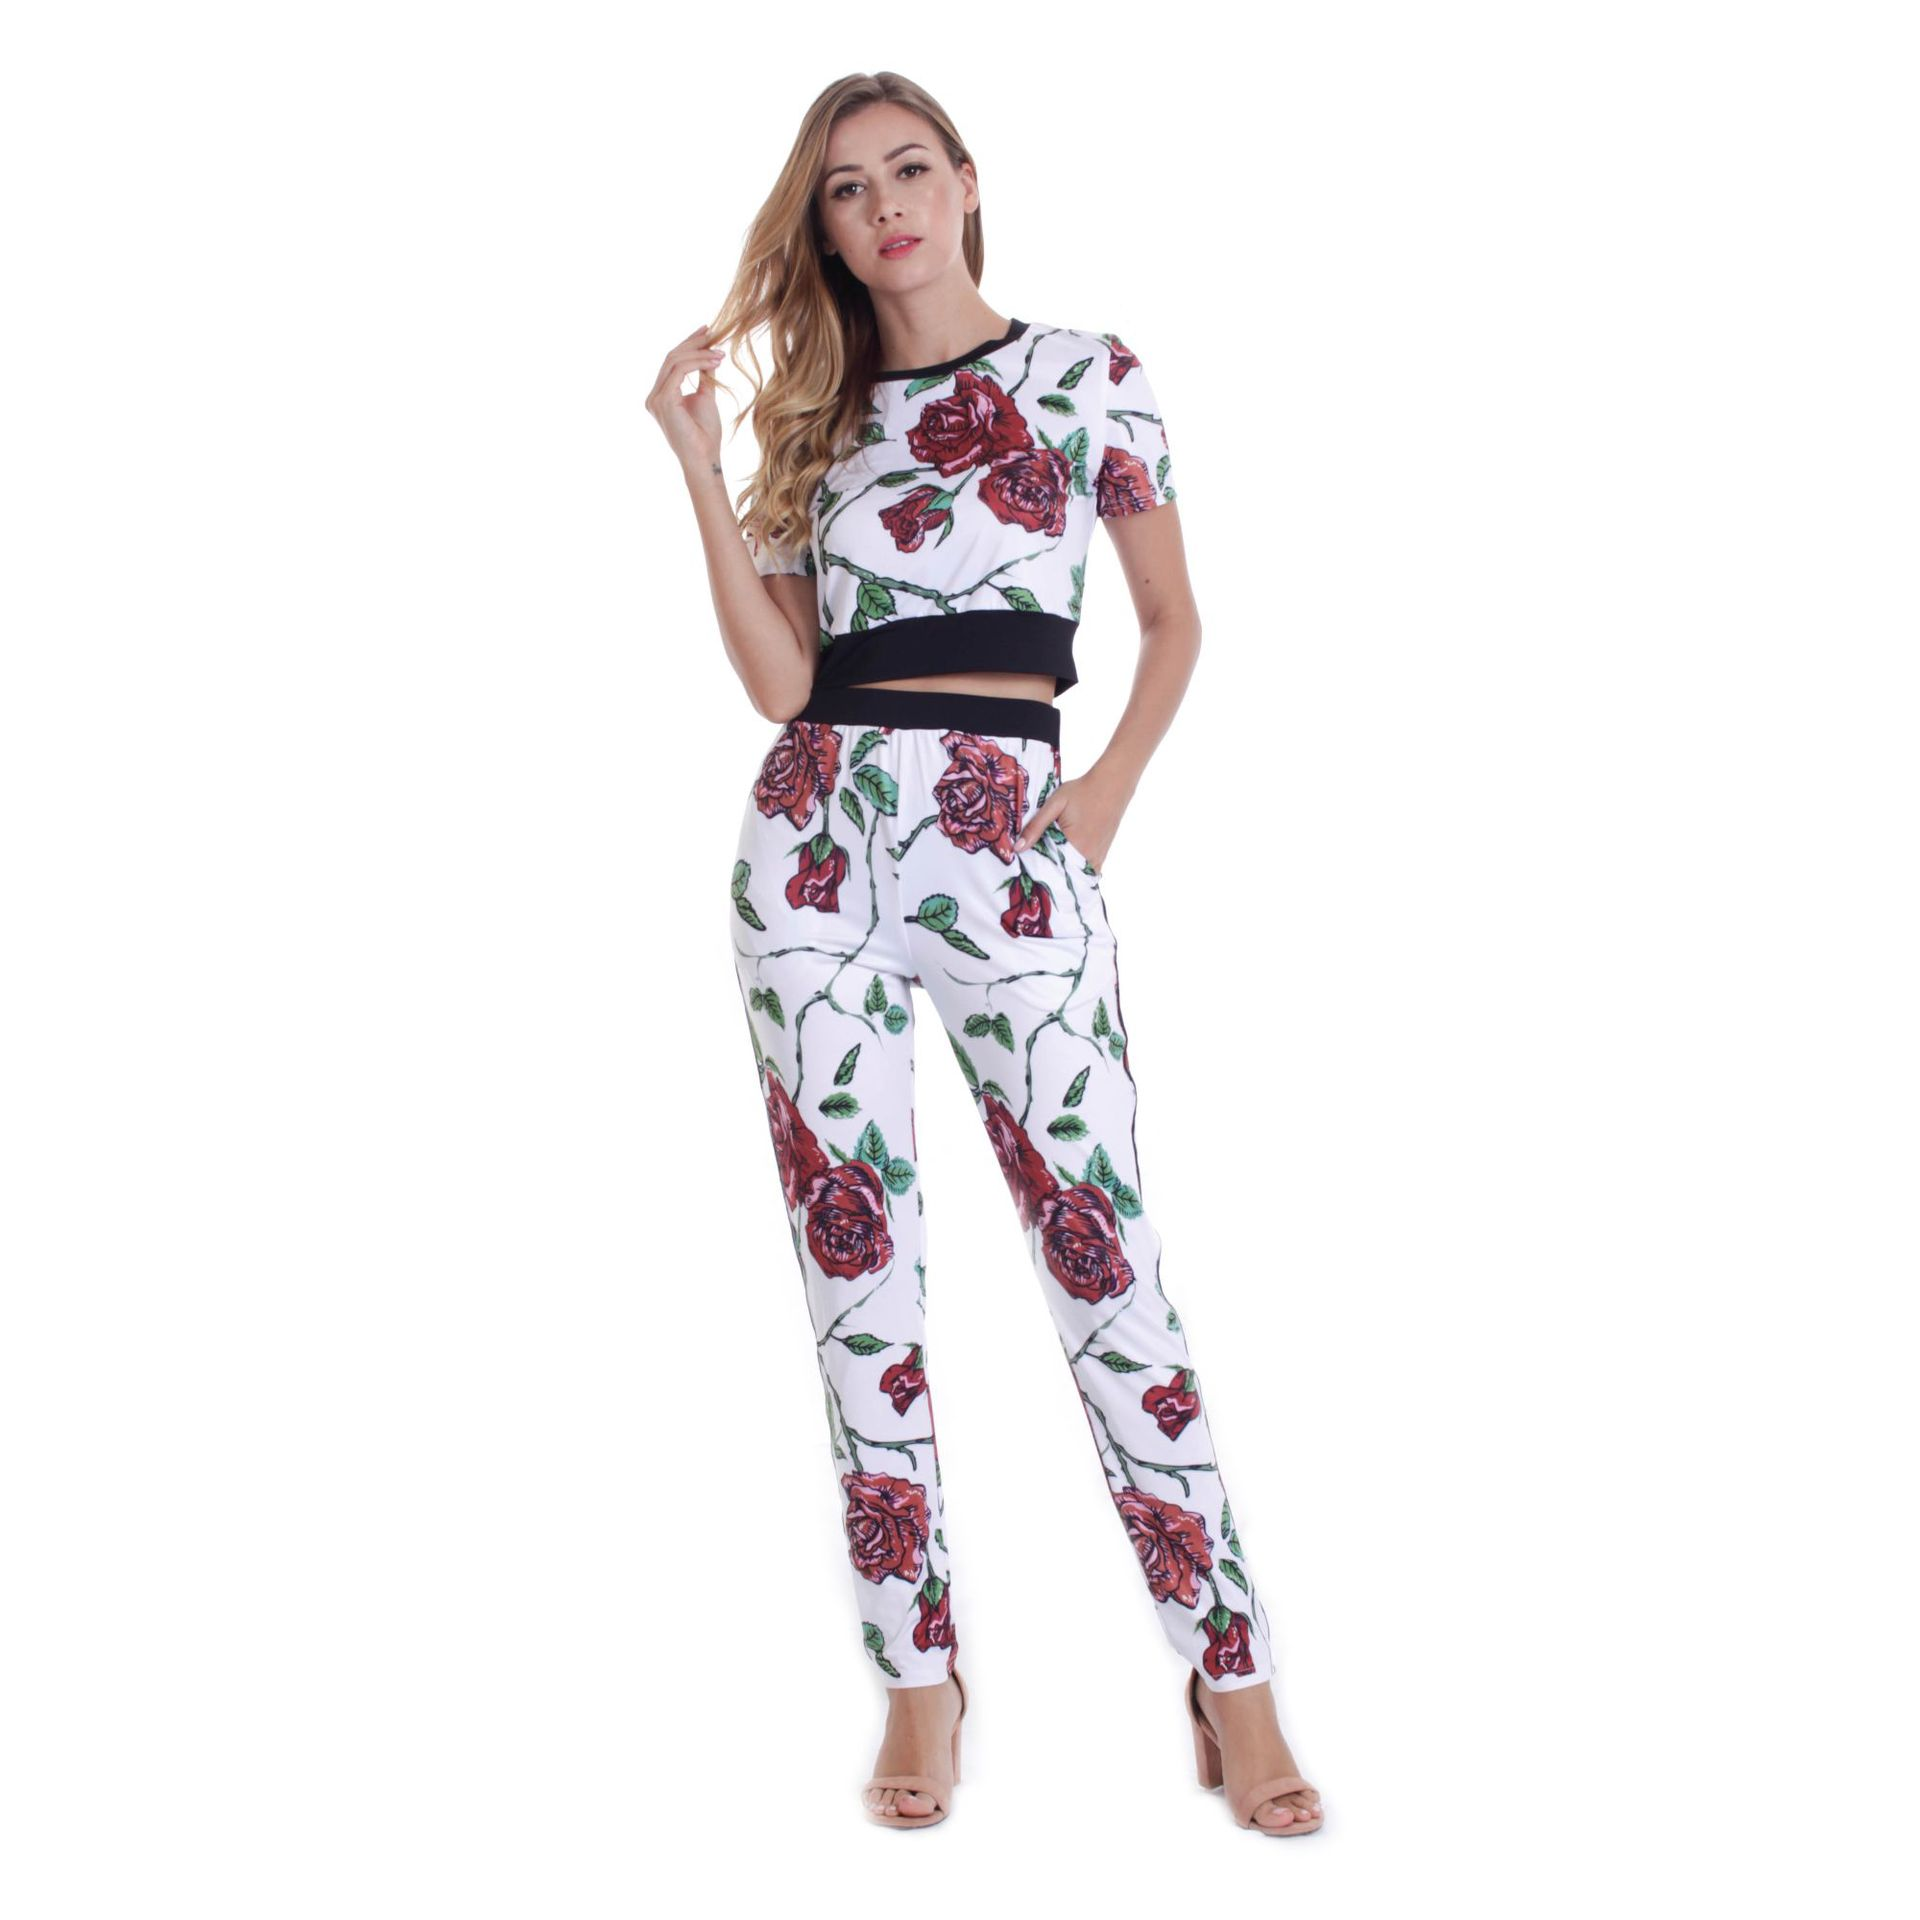 A Generation Of Fat Hot Sales Hot Selling  Summer Fashion & Sports Set WOMEN'S Short Sleeved Printed Closing Foot Leisure Su